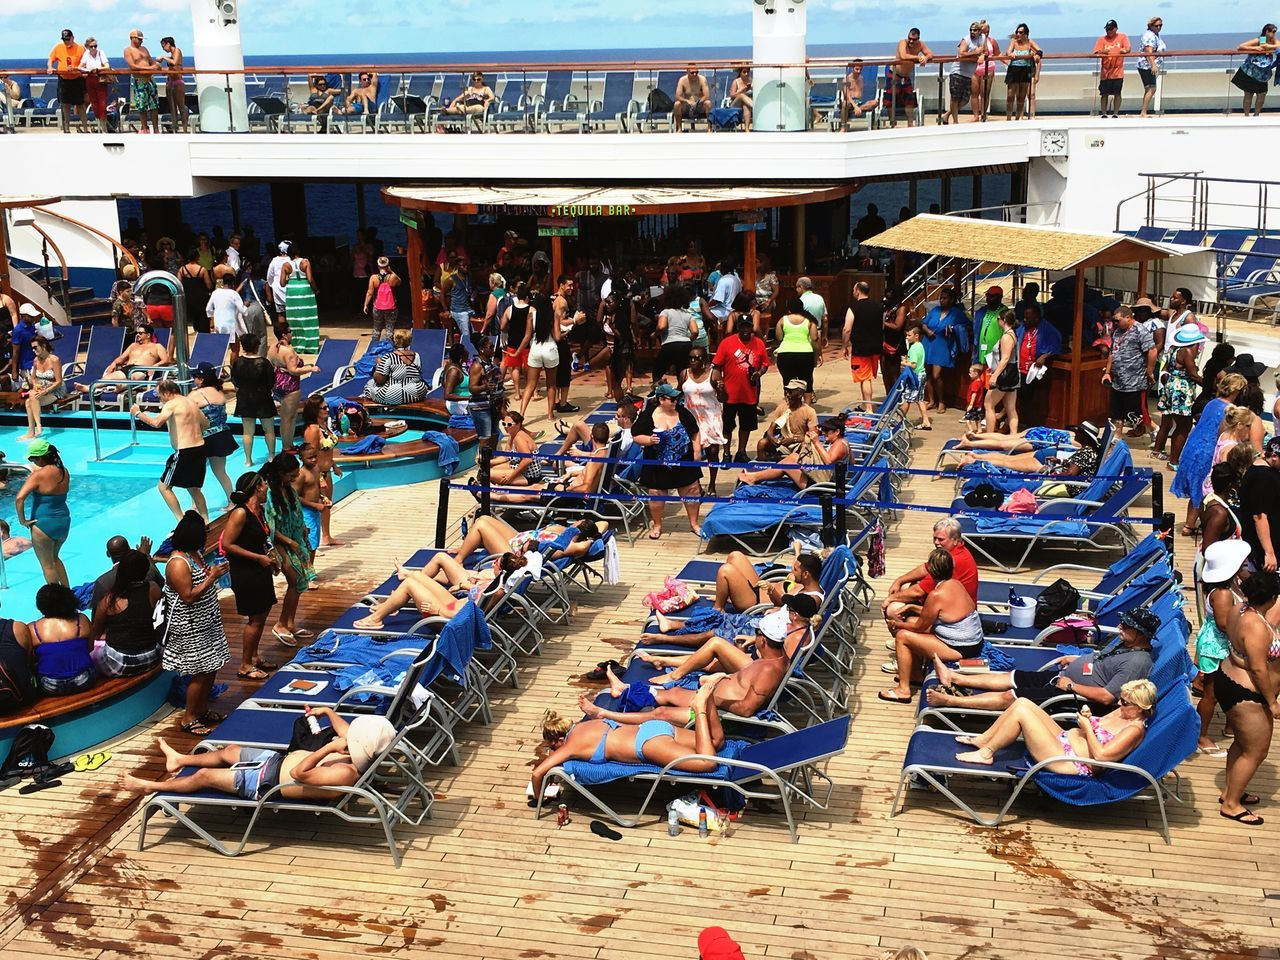 Large Group Of People Vacations Tourism Travel Destinations Outdoors Crowd Men People Day Women Real People Cruise Ship Swimming Pool Fun Dancing Lounging Vacation Relaxing Sunbathing